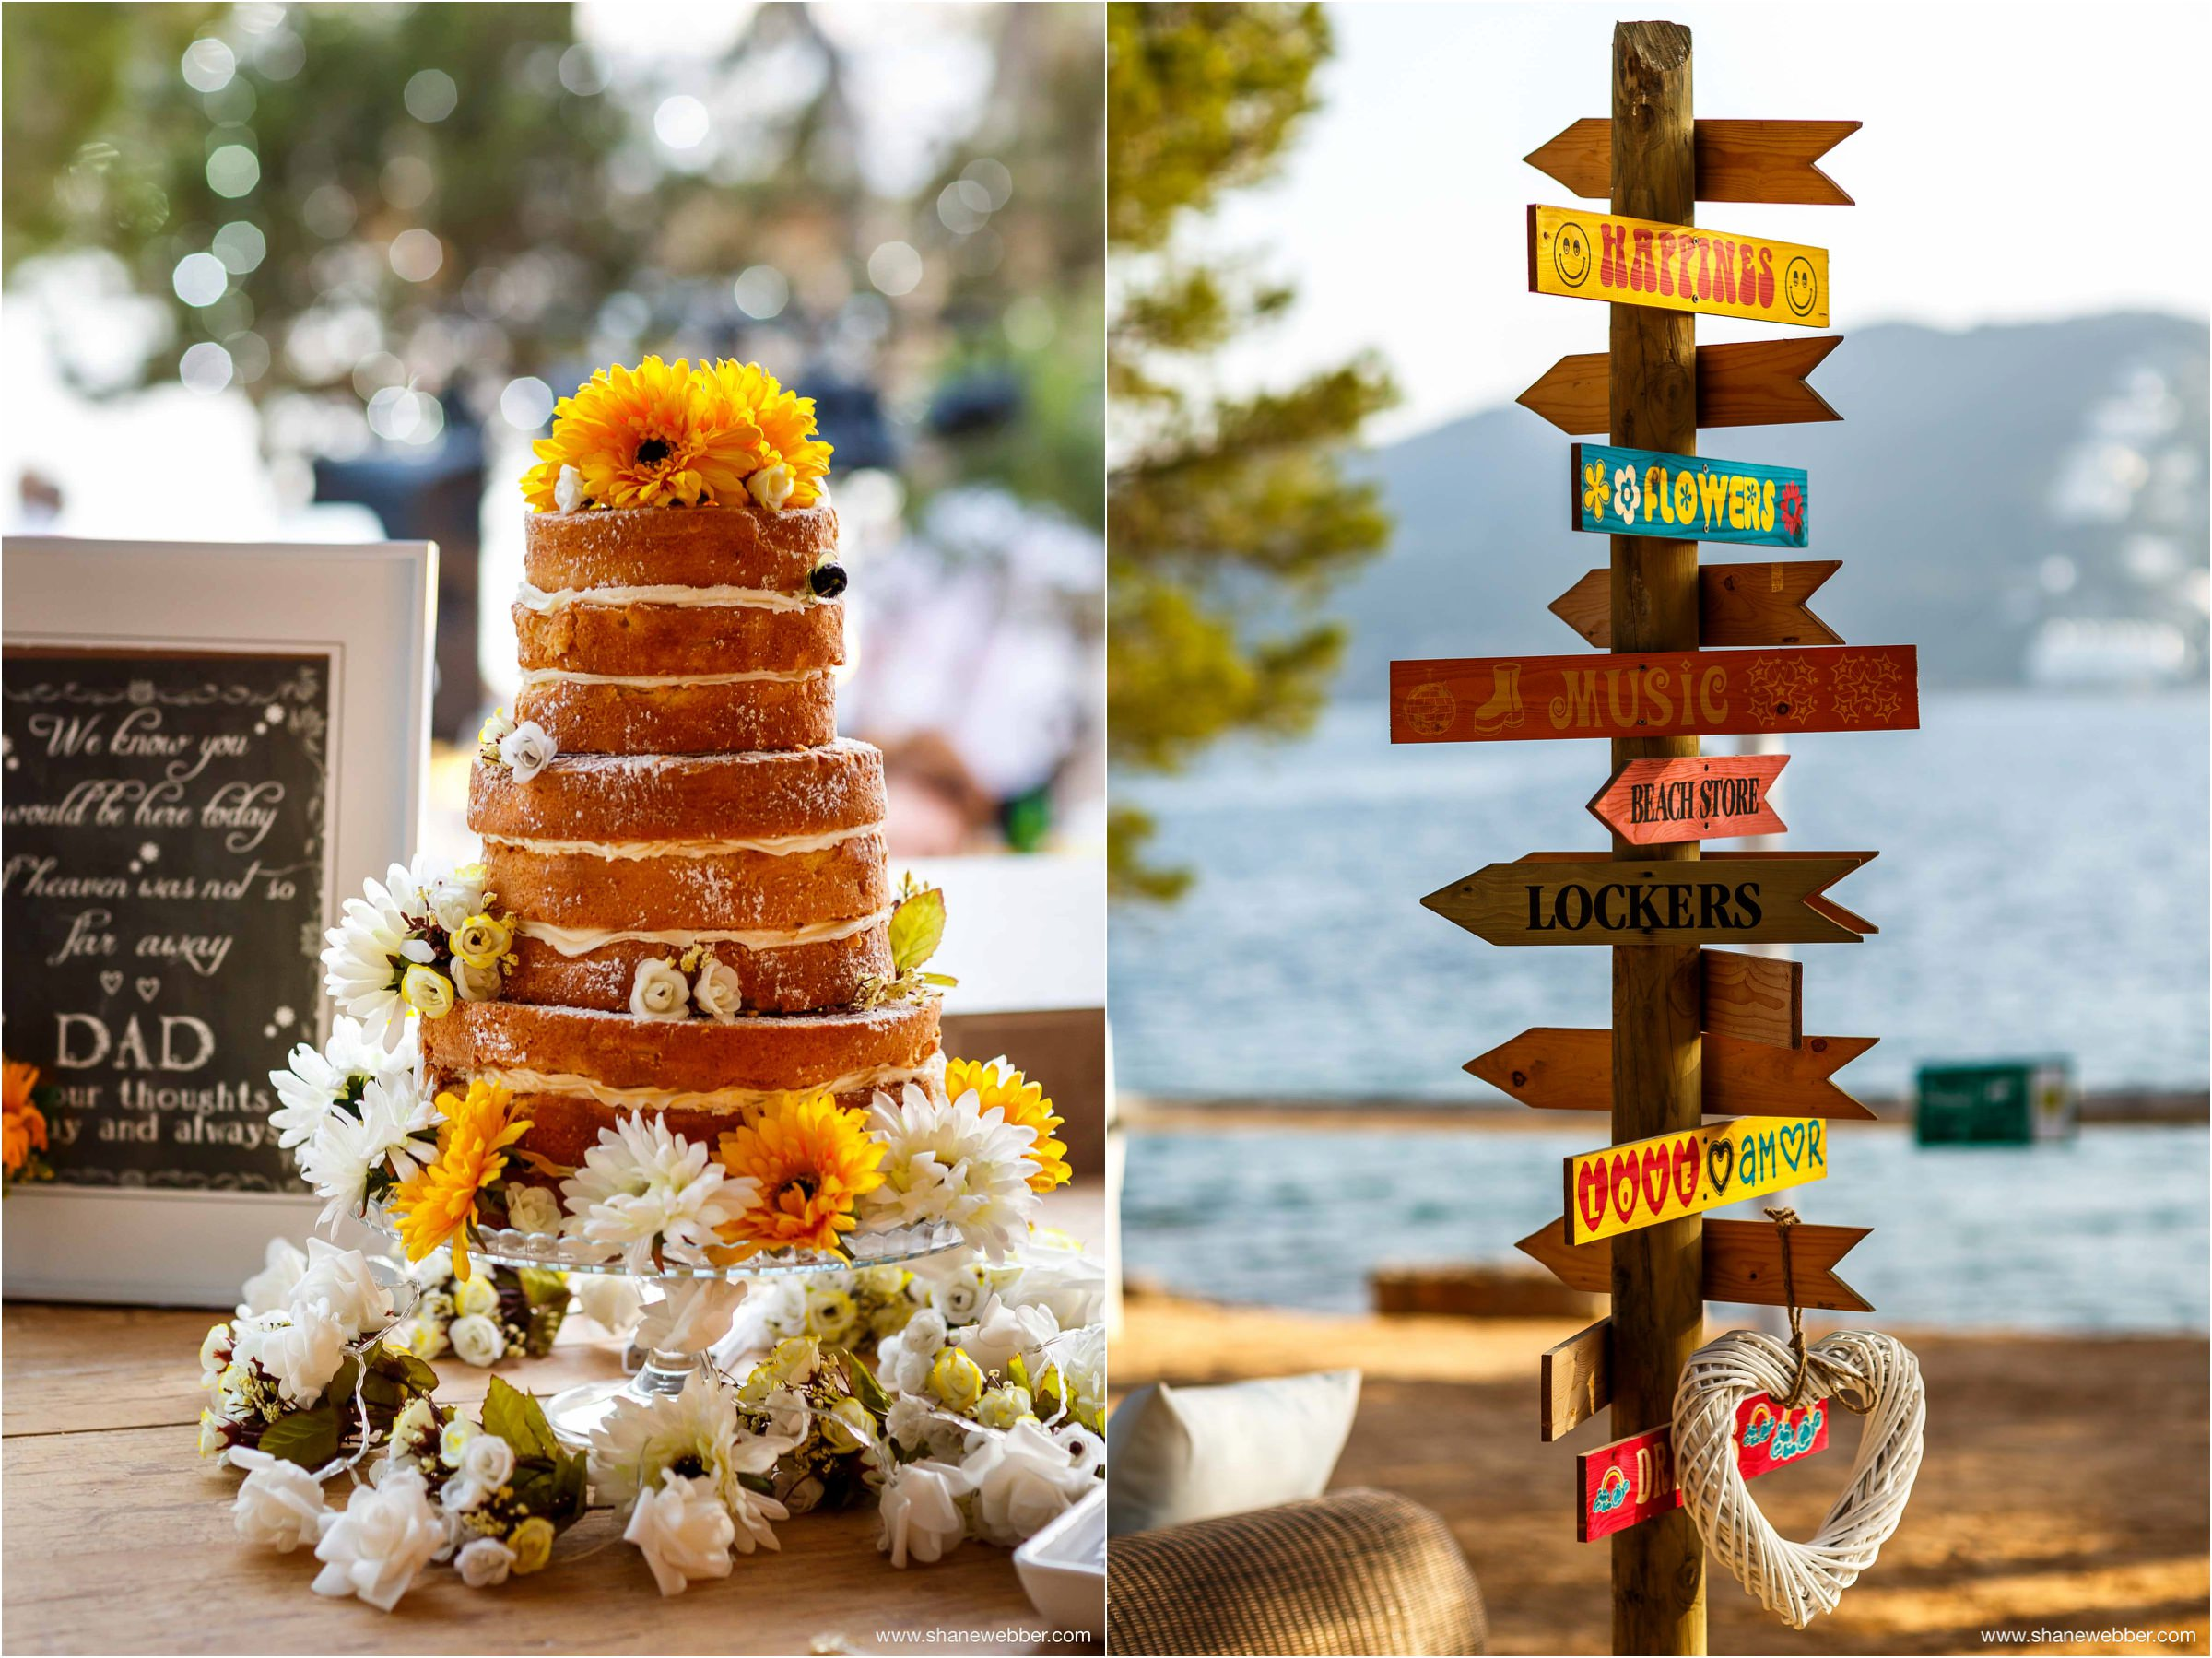 Naked wedding cake with sunflower decorations